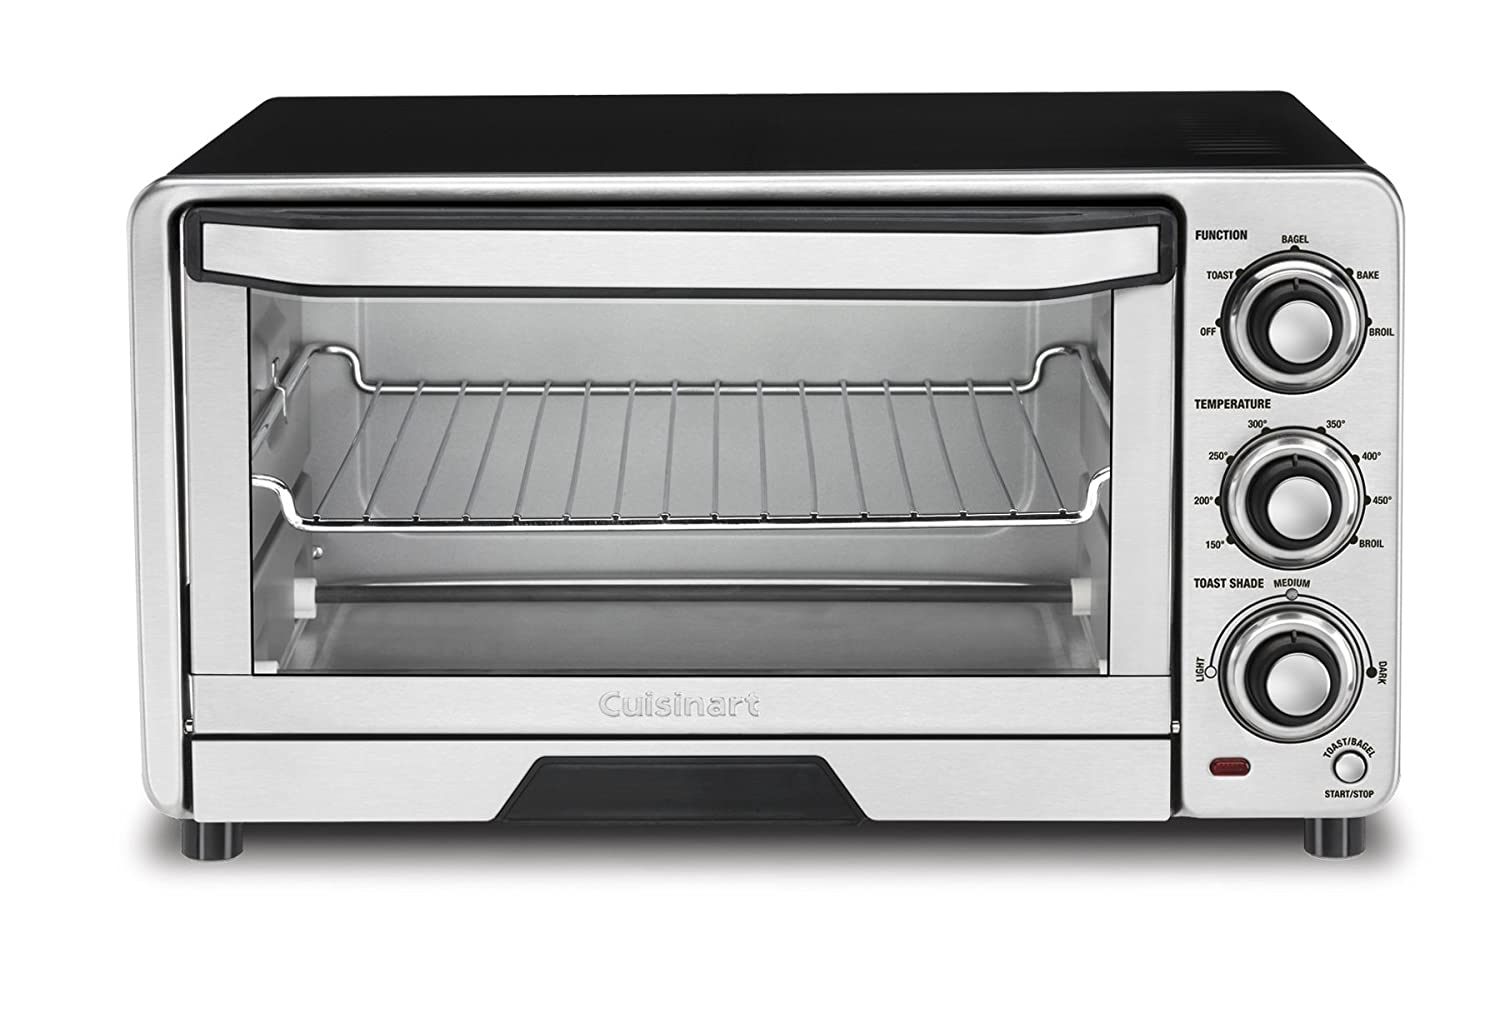 Cuisinart toaster oven review